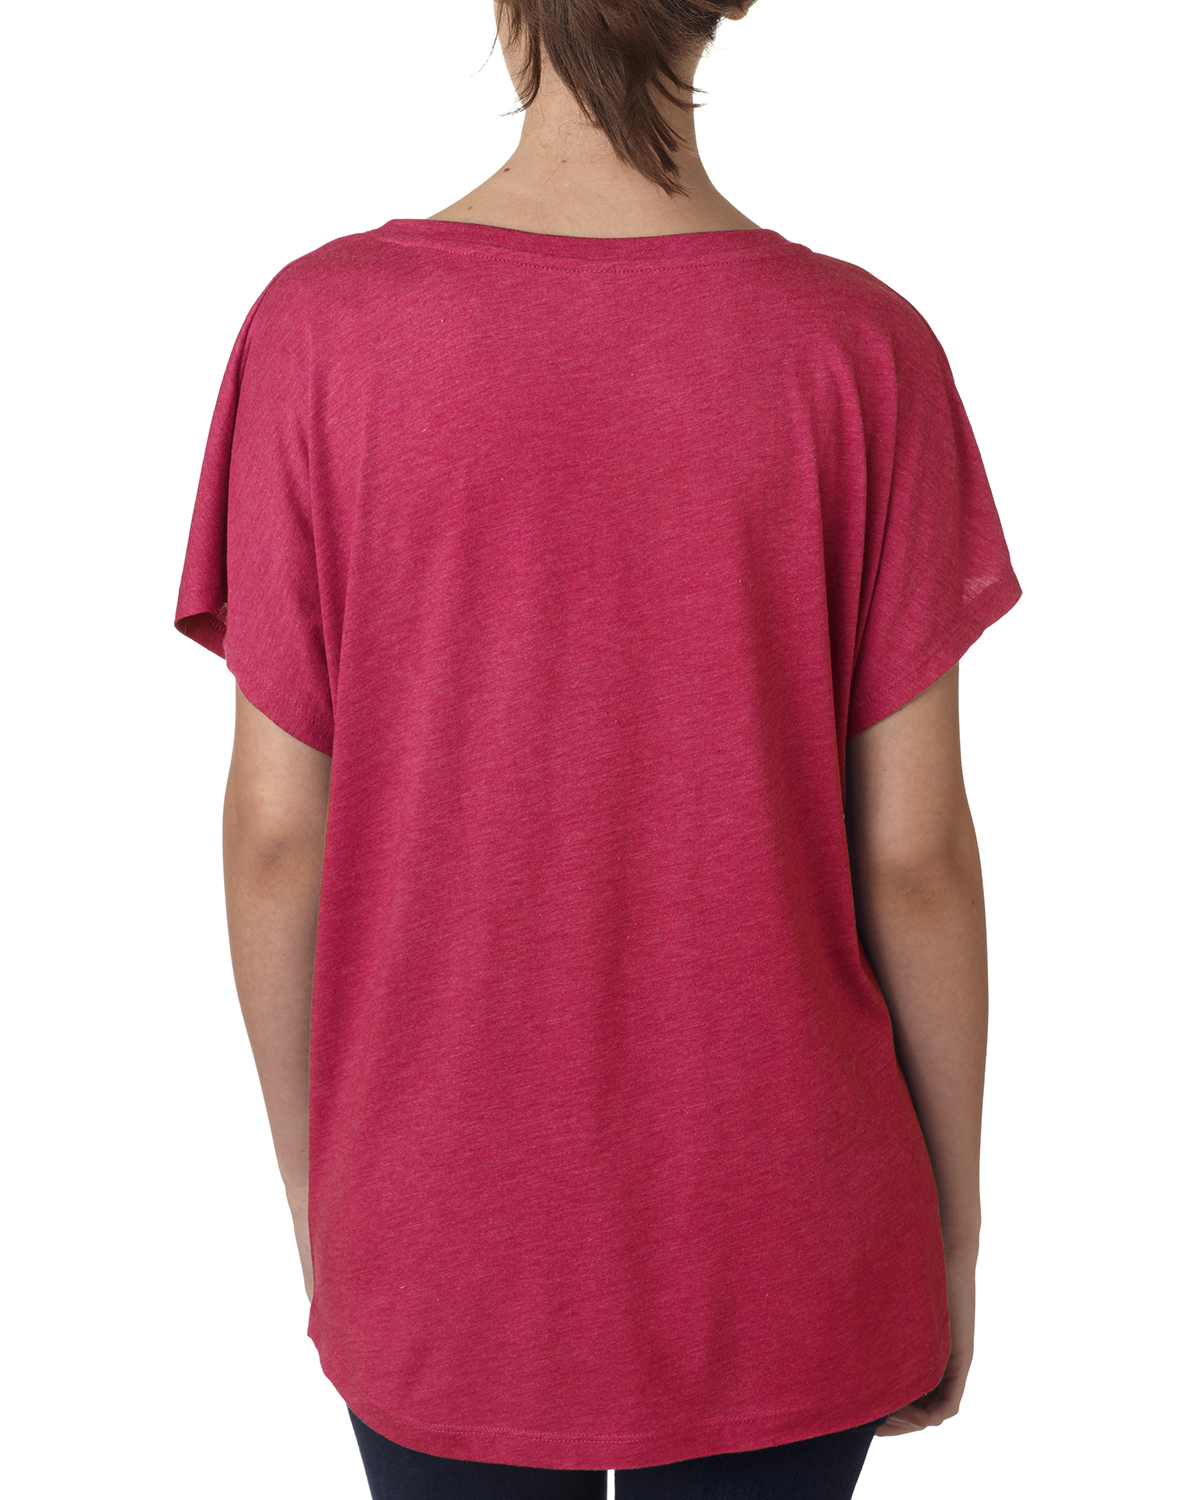 NEW-Next-Level-Junior-Fit-Triblend-Dolman-Sleeve-Relexed-Fit-T-Shirt-B-6760 thumbnail 45